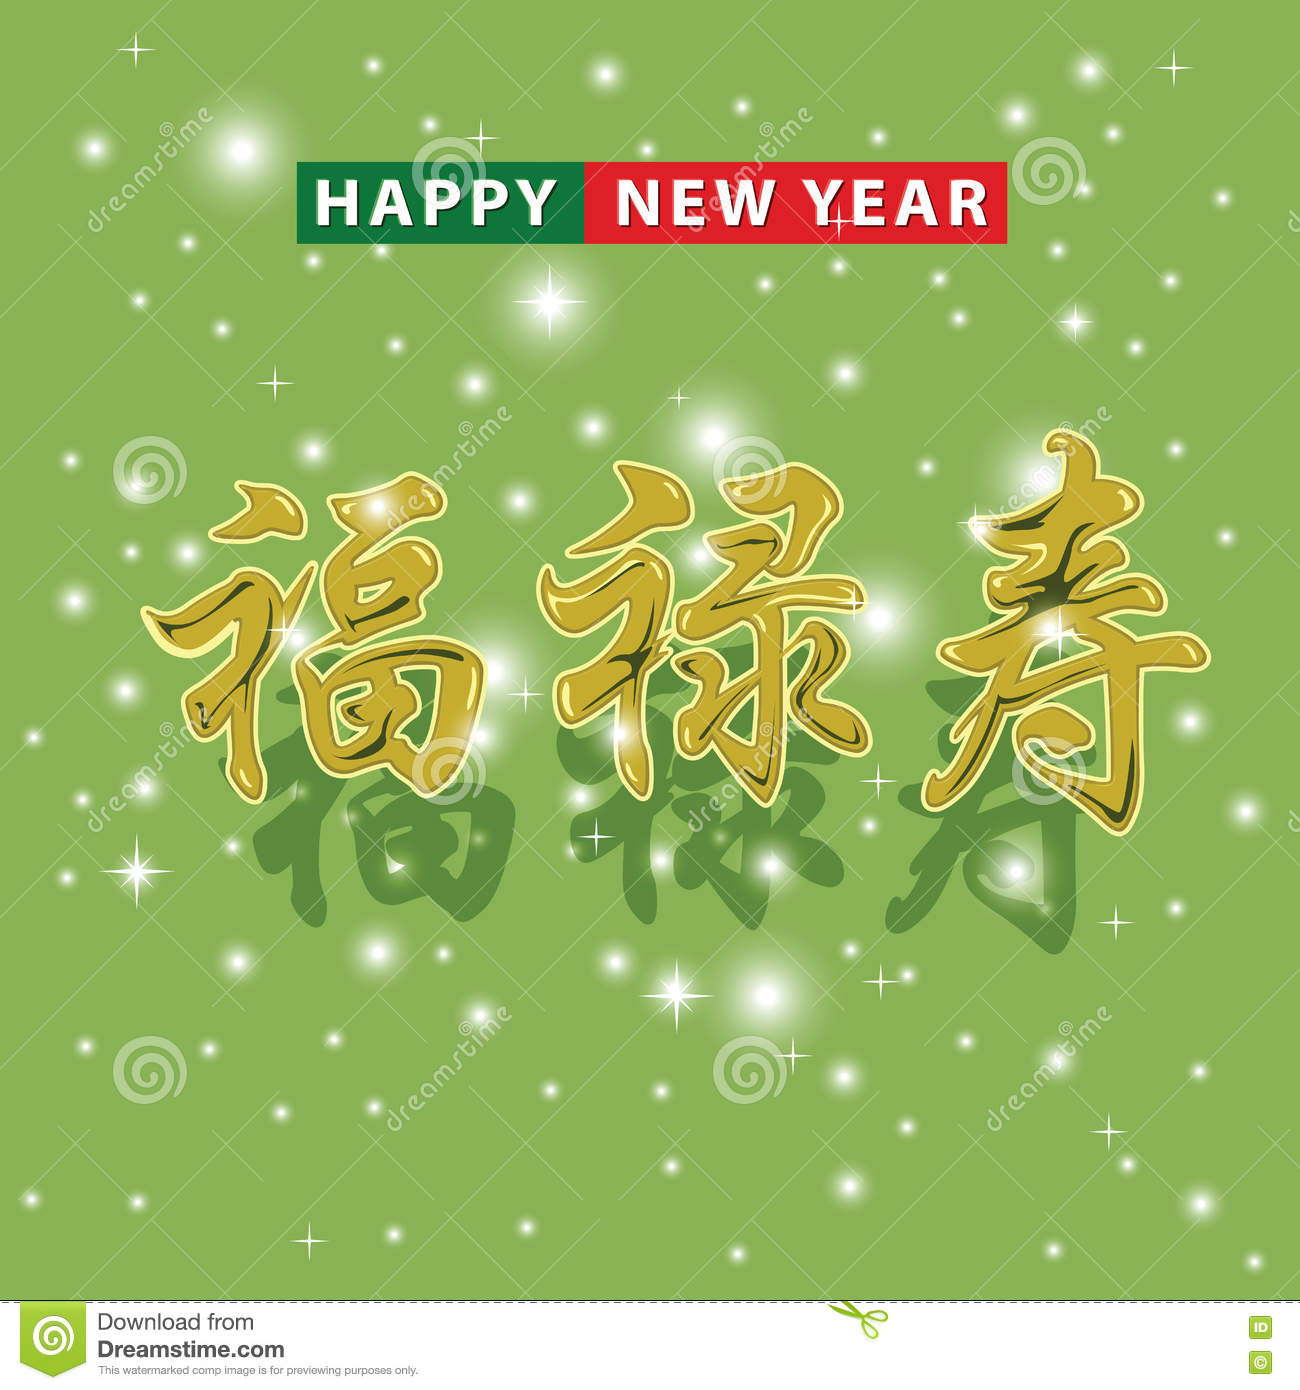 Happy New Year Greetings With You On Green Tone Stock Vector